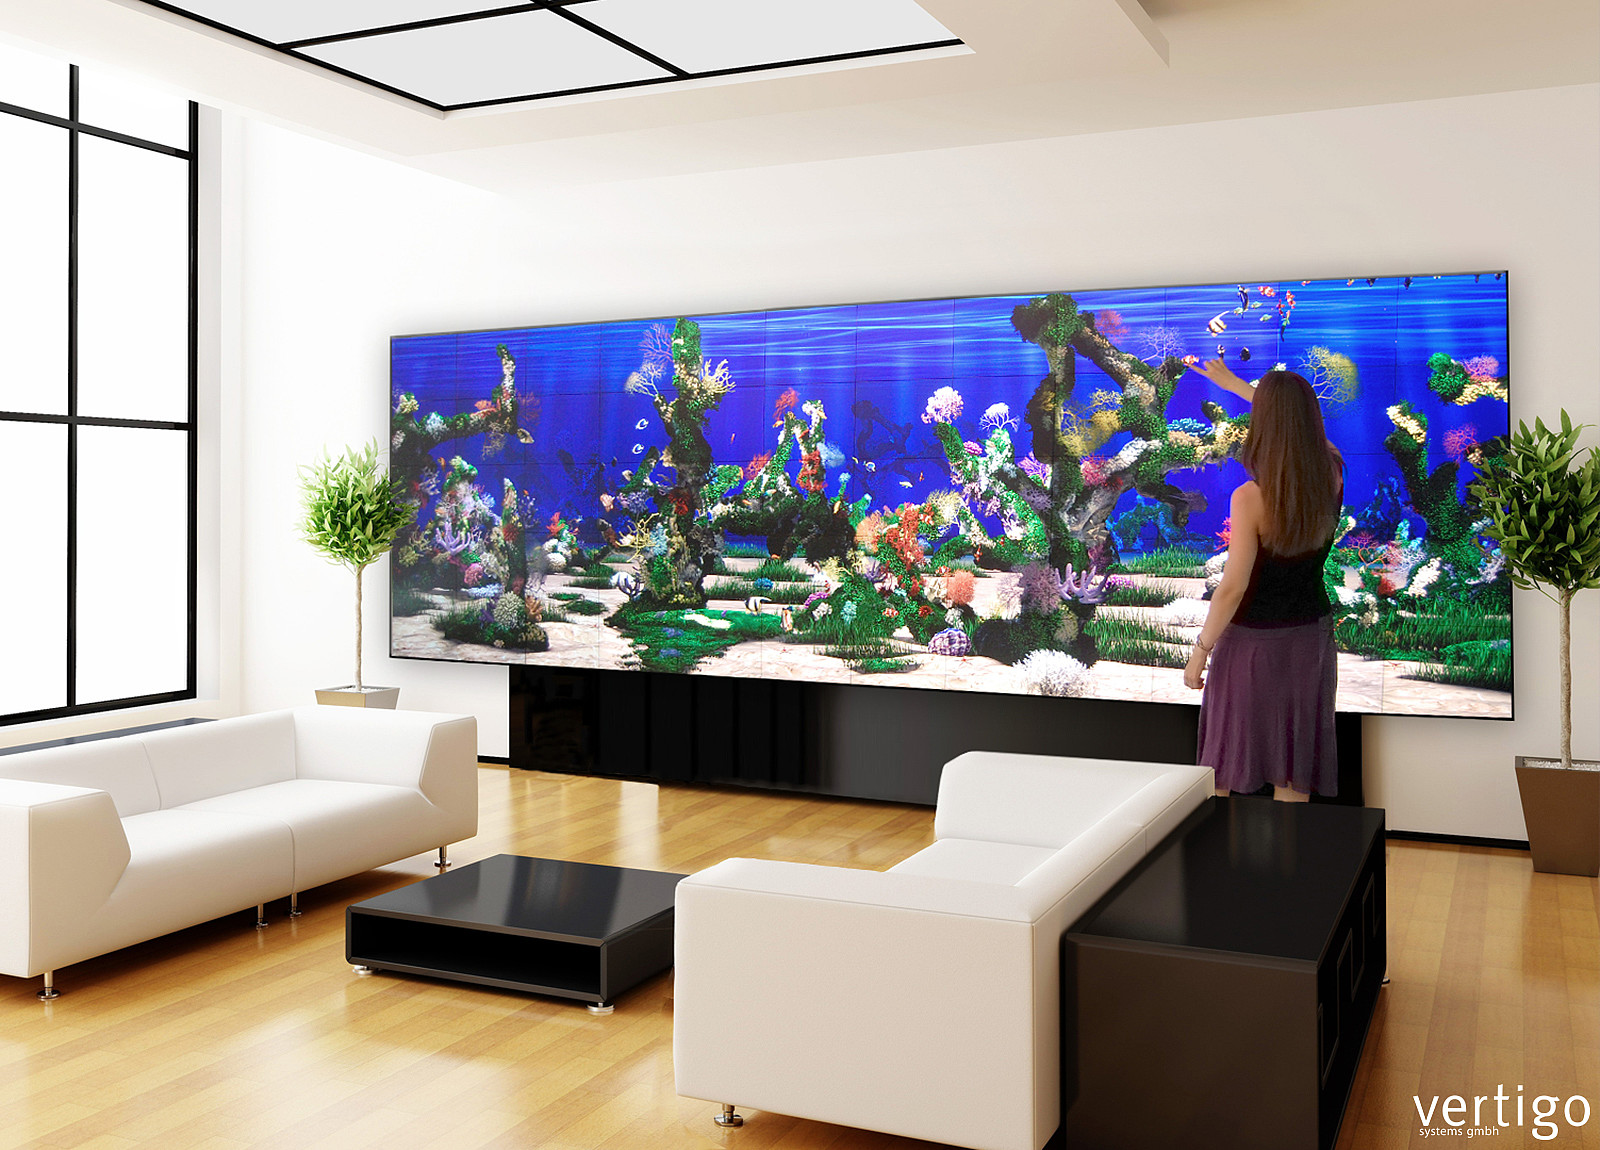 Living wall interaktive w nde vertigo systems gmbh - Aquarium in der wand ...